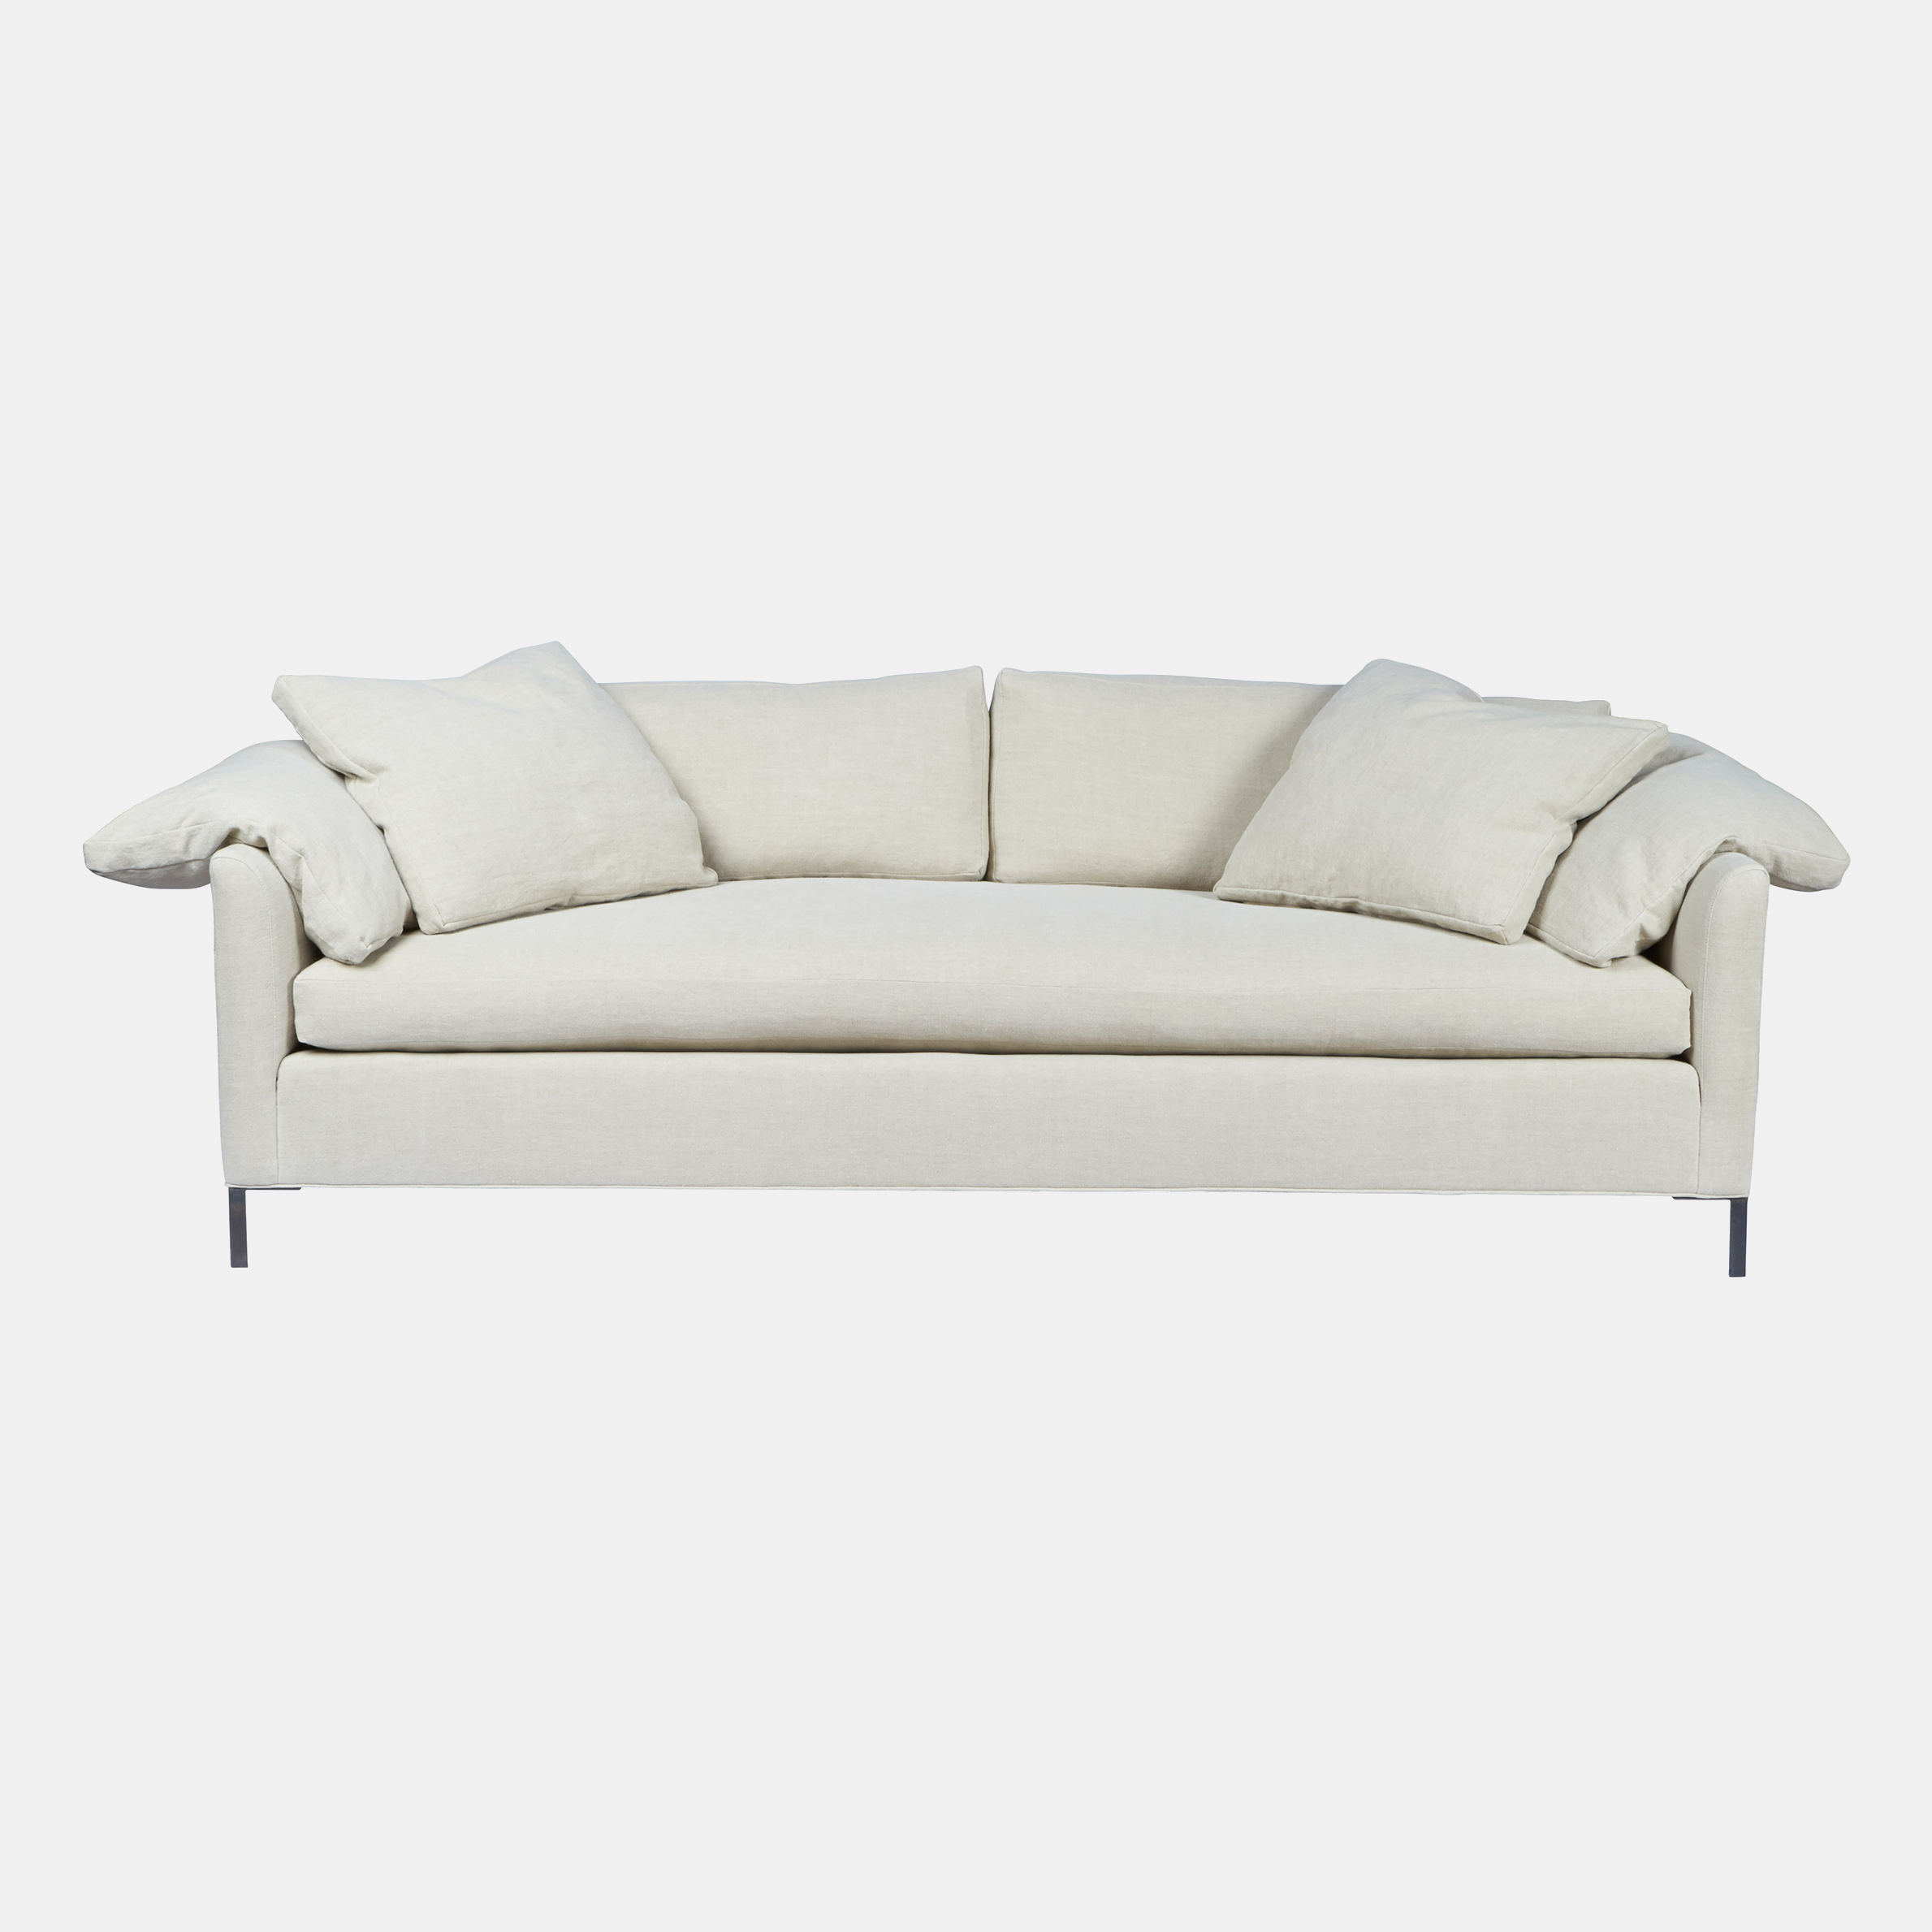 """Radley Sofa  78""""w x 30""""h x 38""""d 90""""w x 30""""h x 38""""d Also available as bench, ottoman, chair and sectional. SKU7729CSC"""